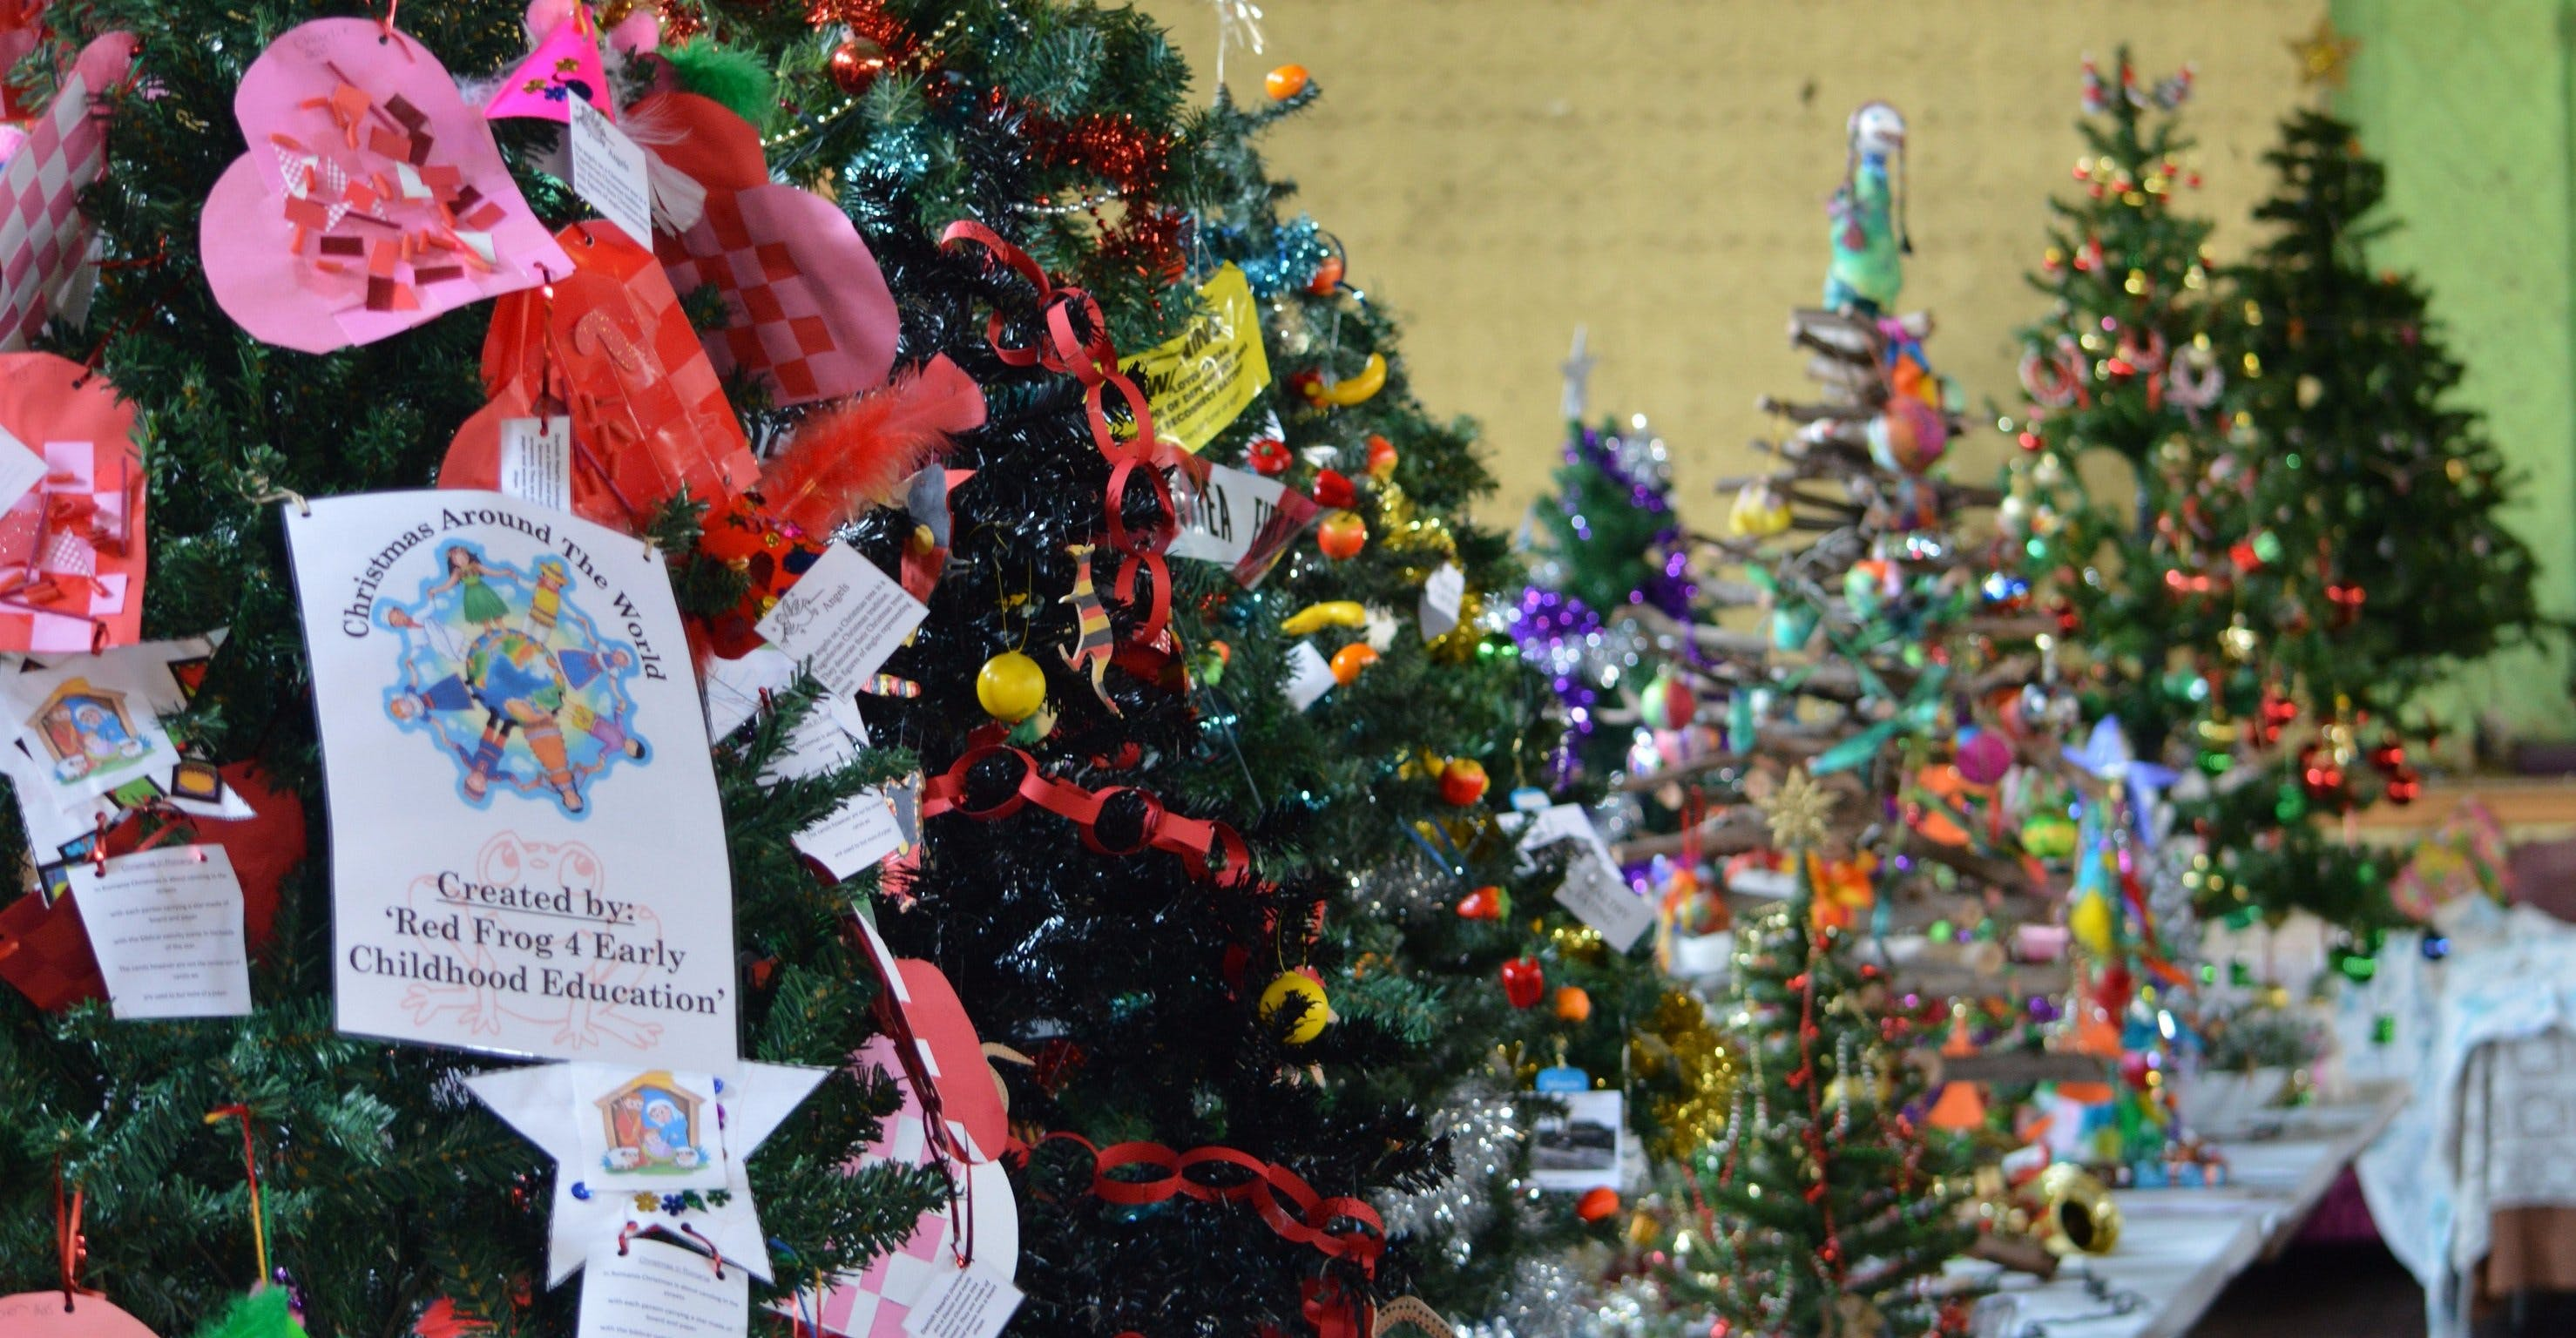 Mount Morgan Christmas Tree Festival Logo and Images